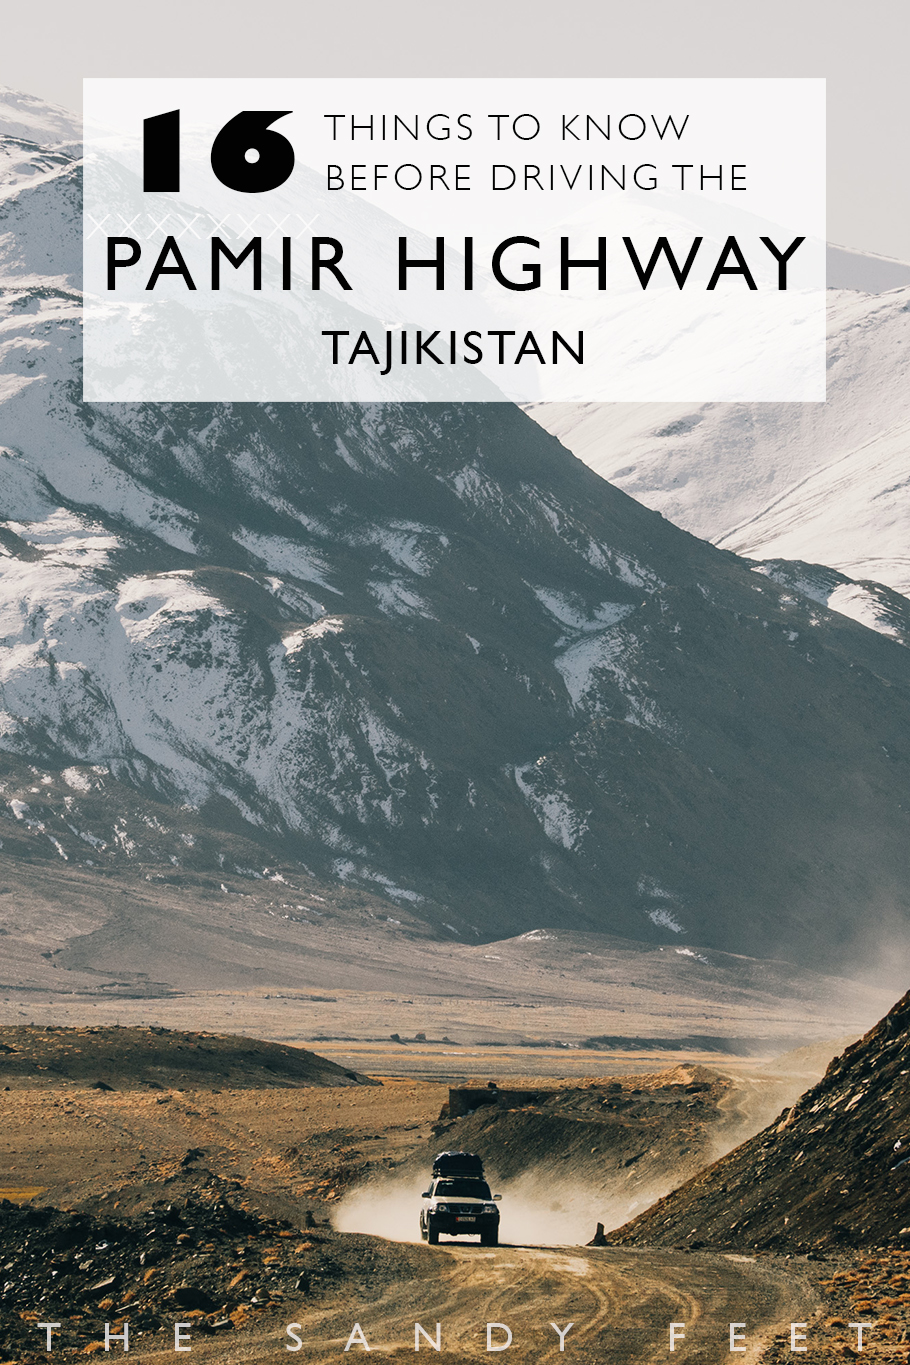 Everything You Need To Know Before Driving The Pamir Highway Through Kyrgyzstan and Tajikistan